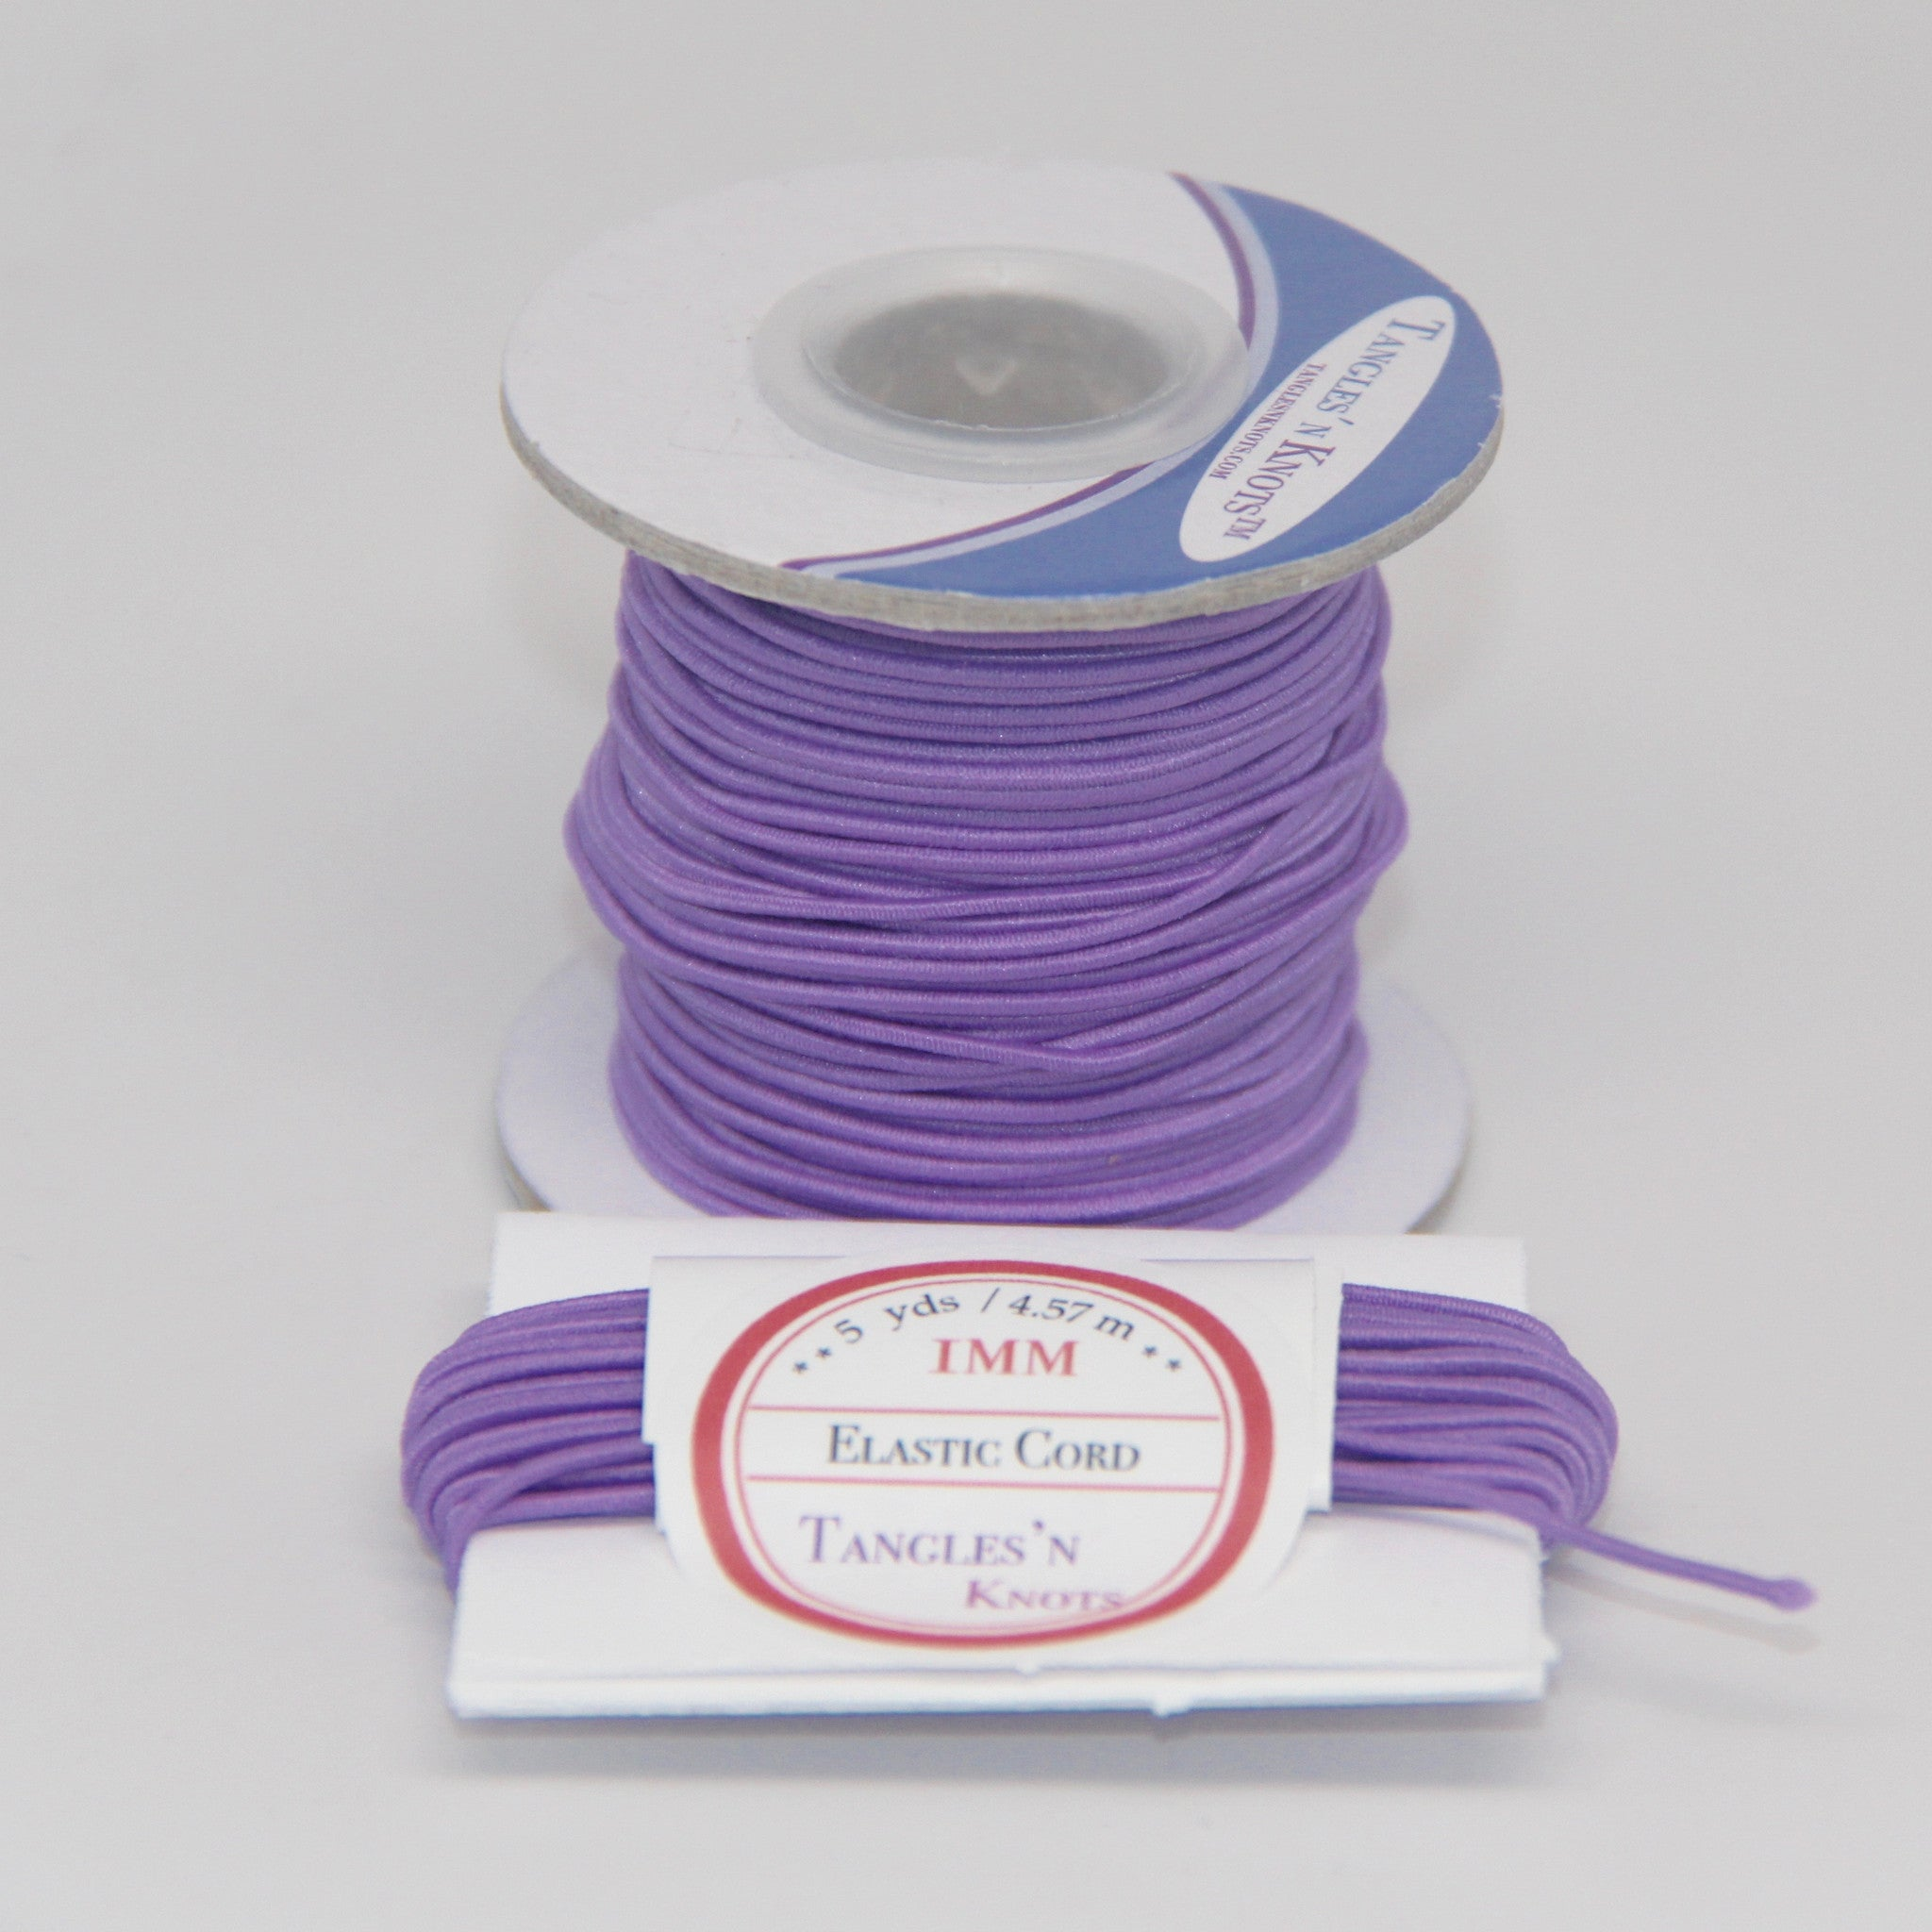 Elastic Cord 1mm Light Iris Tangles N Knots